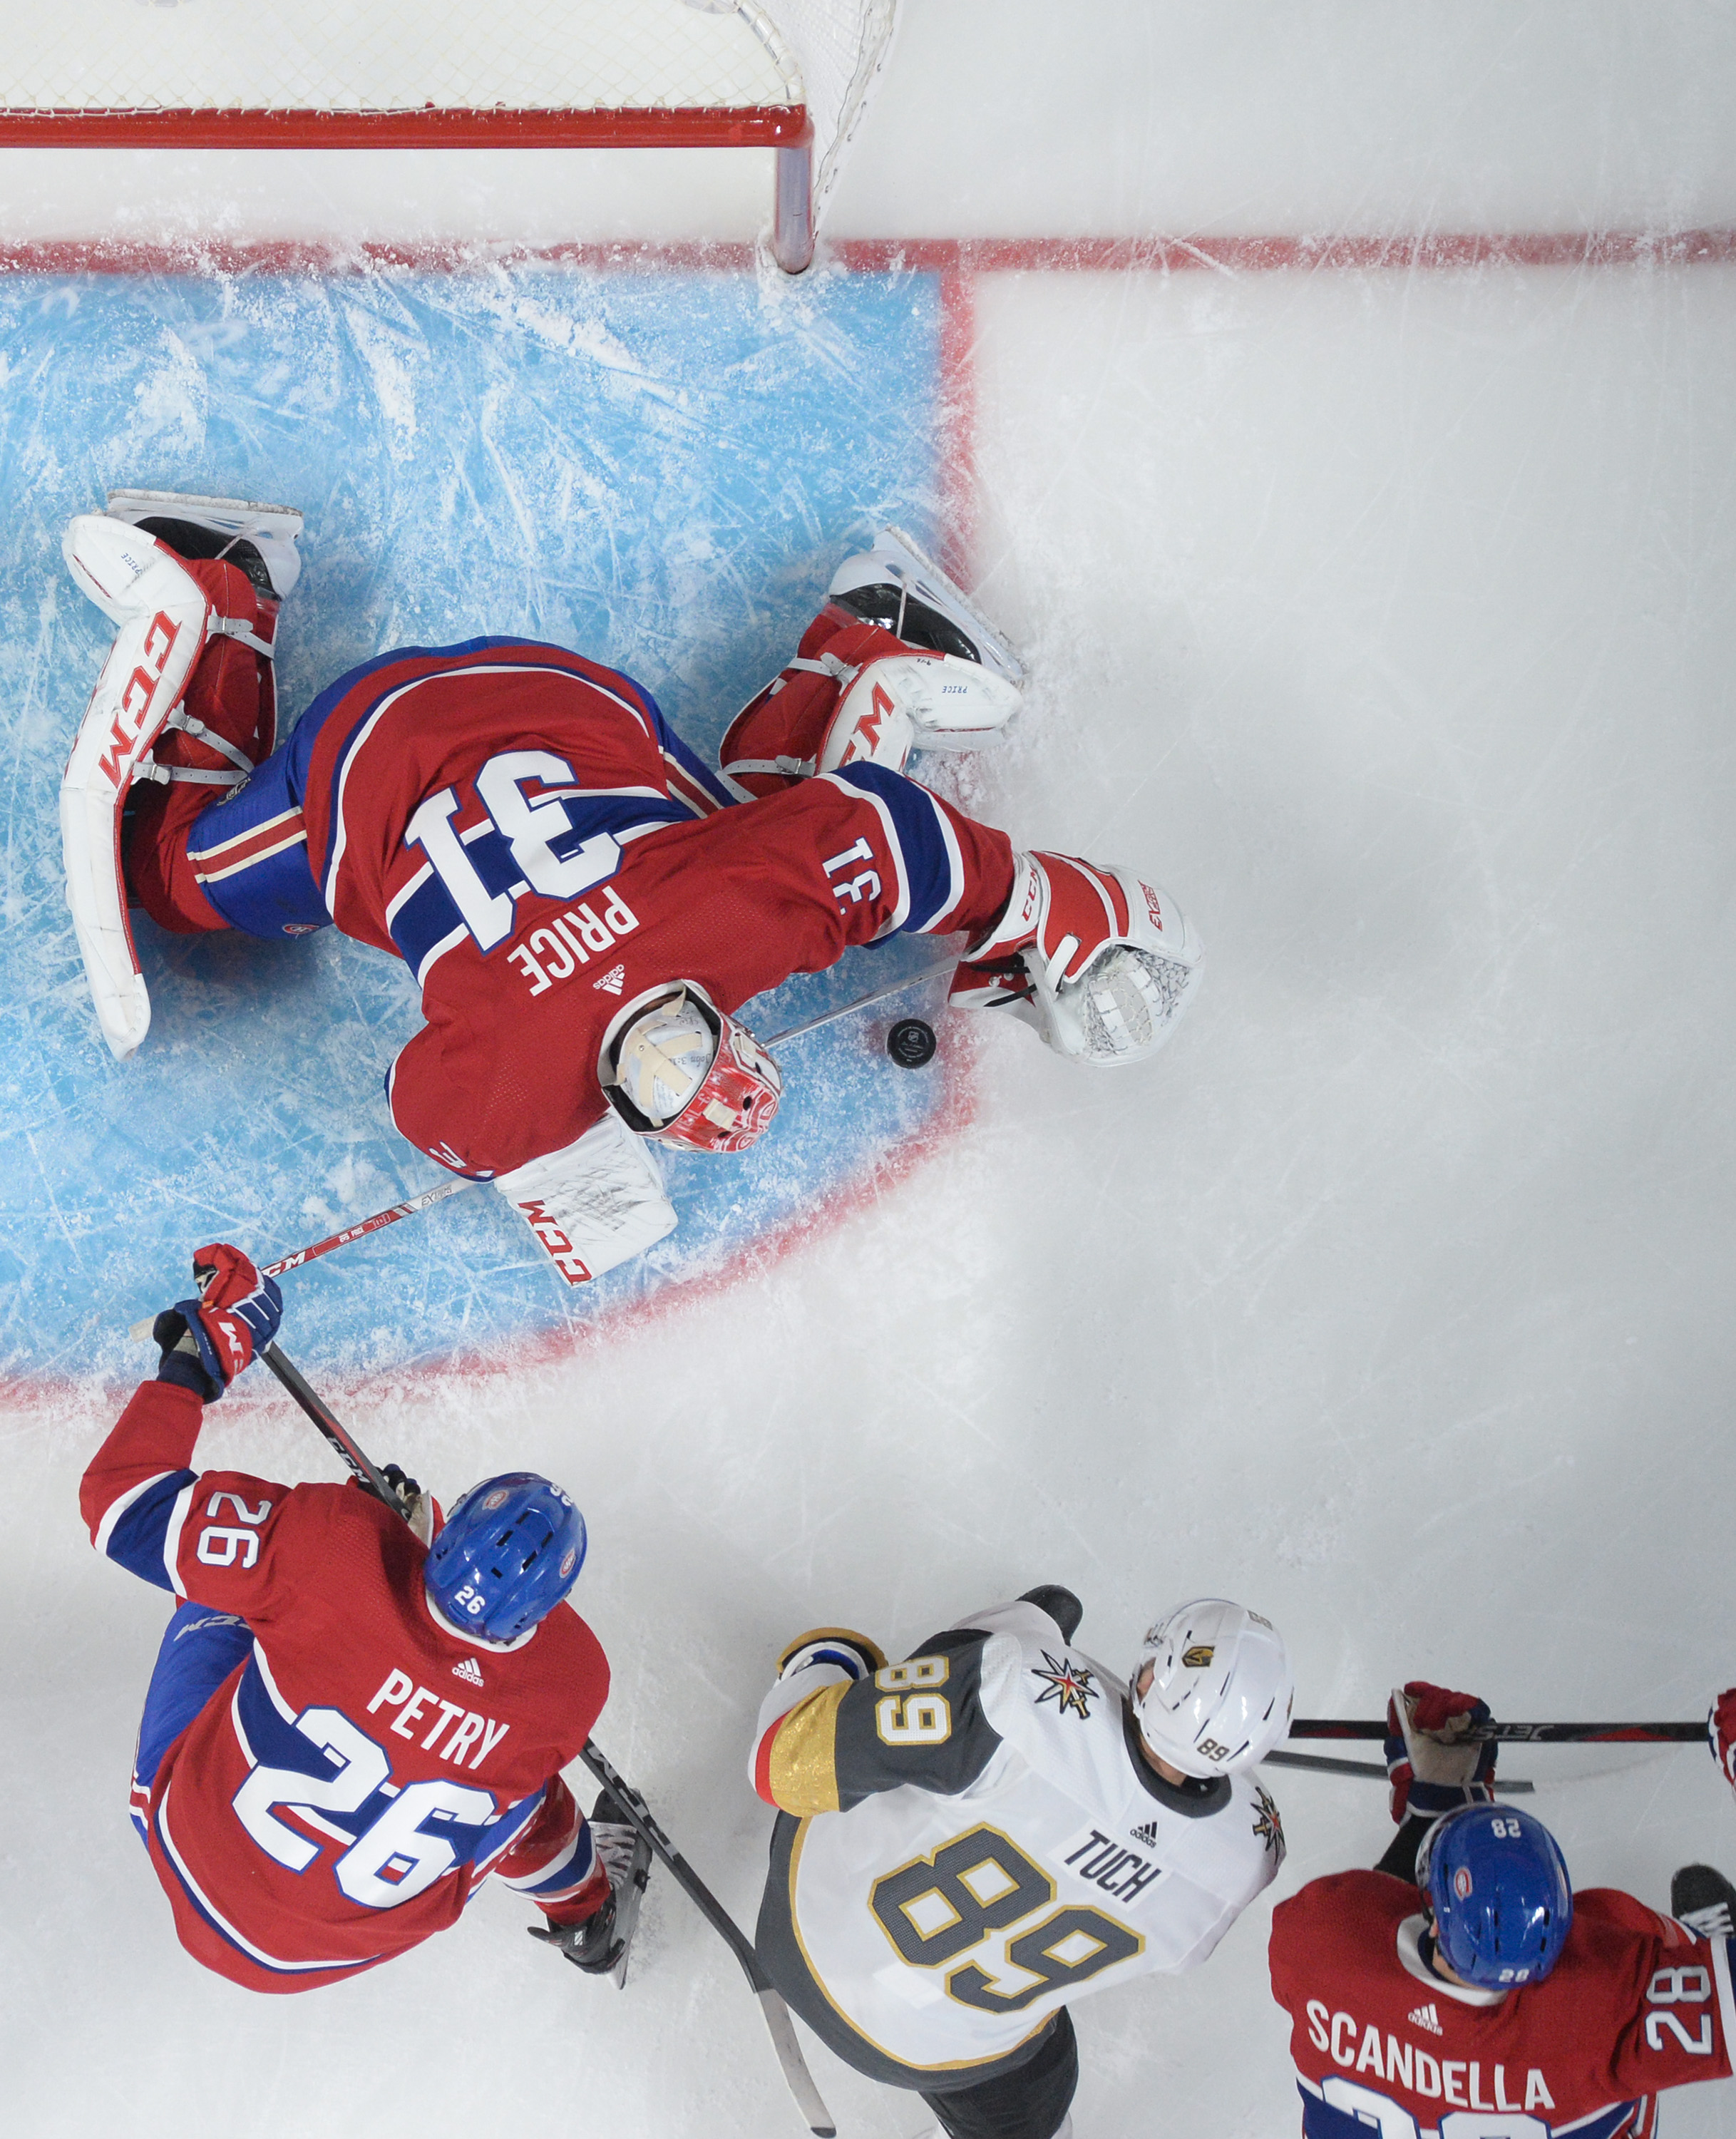 Carey Price #31 of the Montreal Canadiens defends the goal against Alex Tuch #89 of the Vegas Golden Knights in the NHL game at the Bell Centre on January 18, 2020 in Montreal, Quebec, Canada.